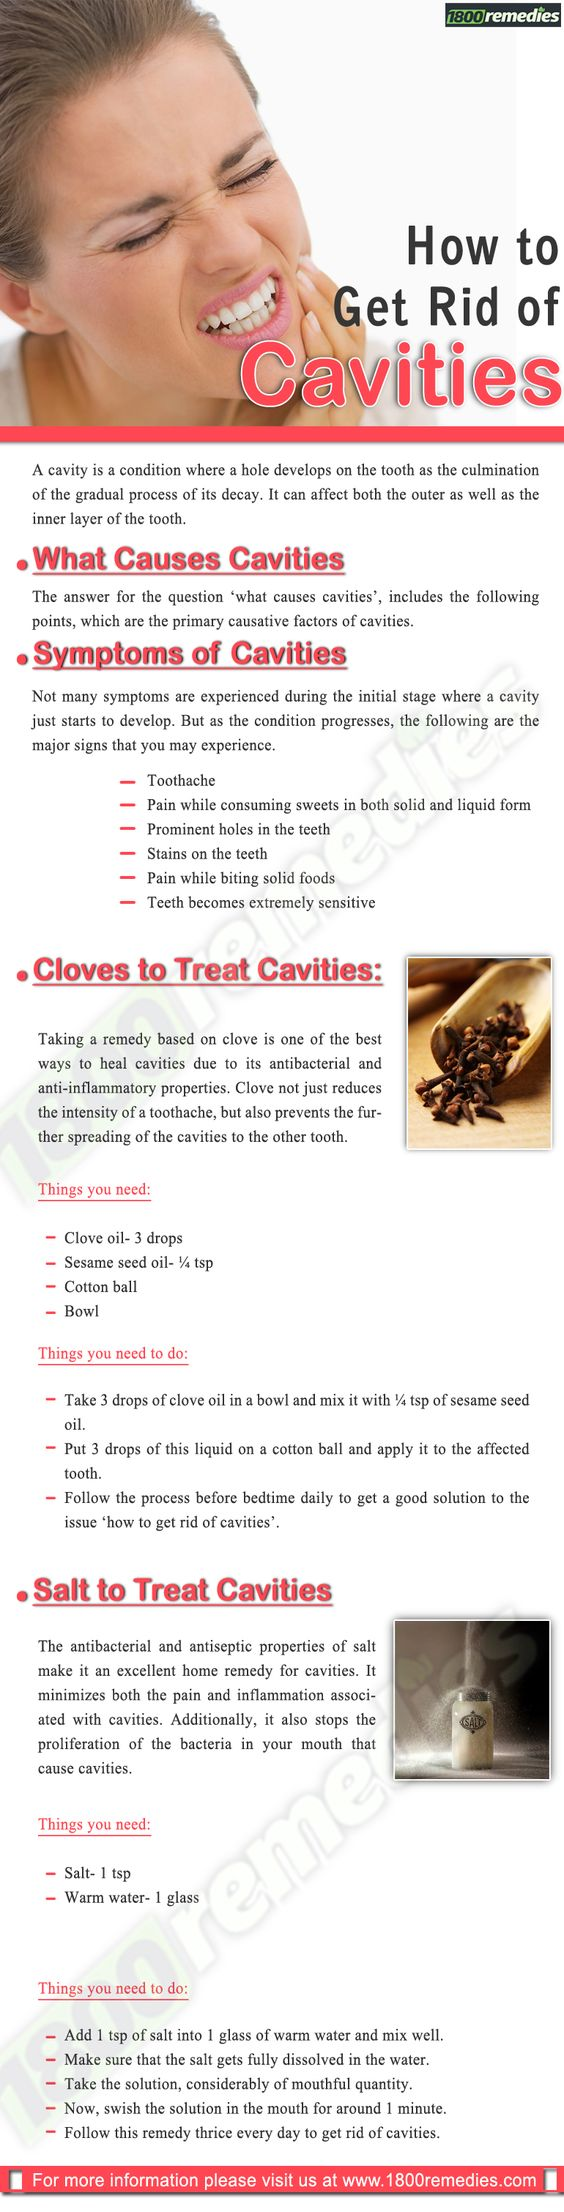 We now come to the important aspect of how to get rid of cavities naturally. It is imperative that you promptly treat the cavities in teeth to avoid the risk of losing the tooth/teeth.